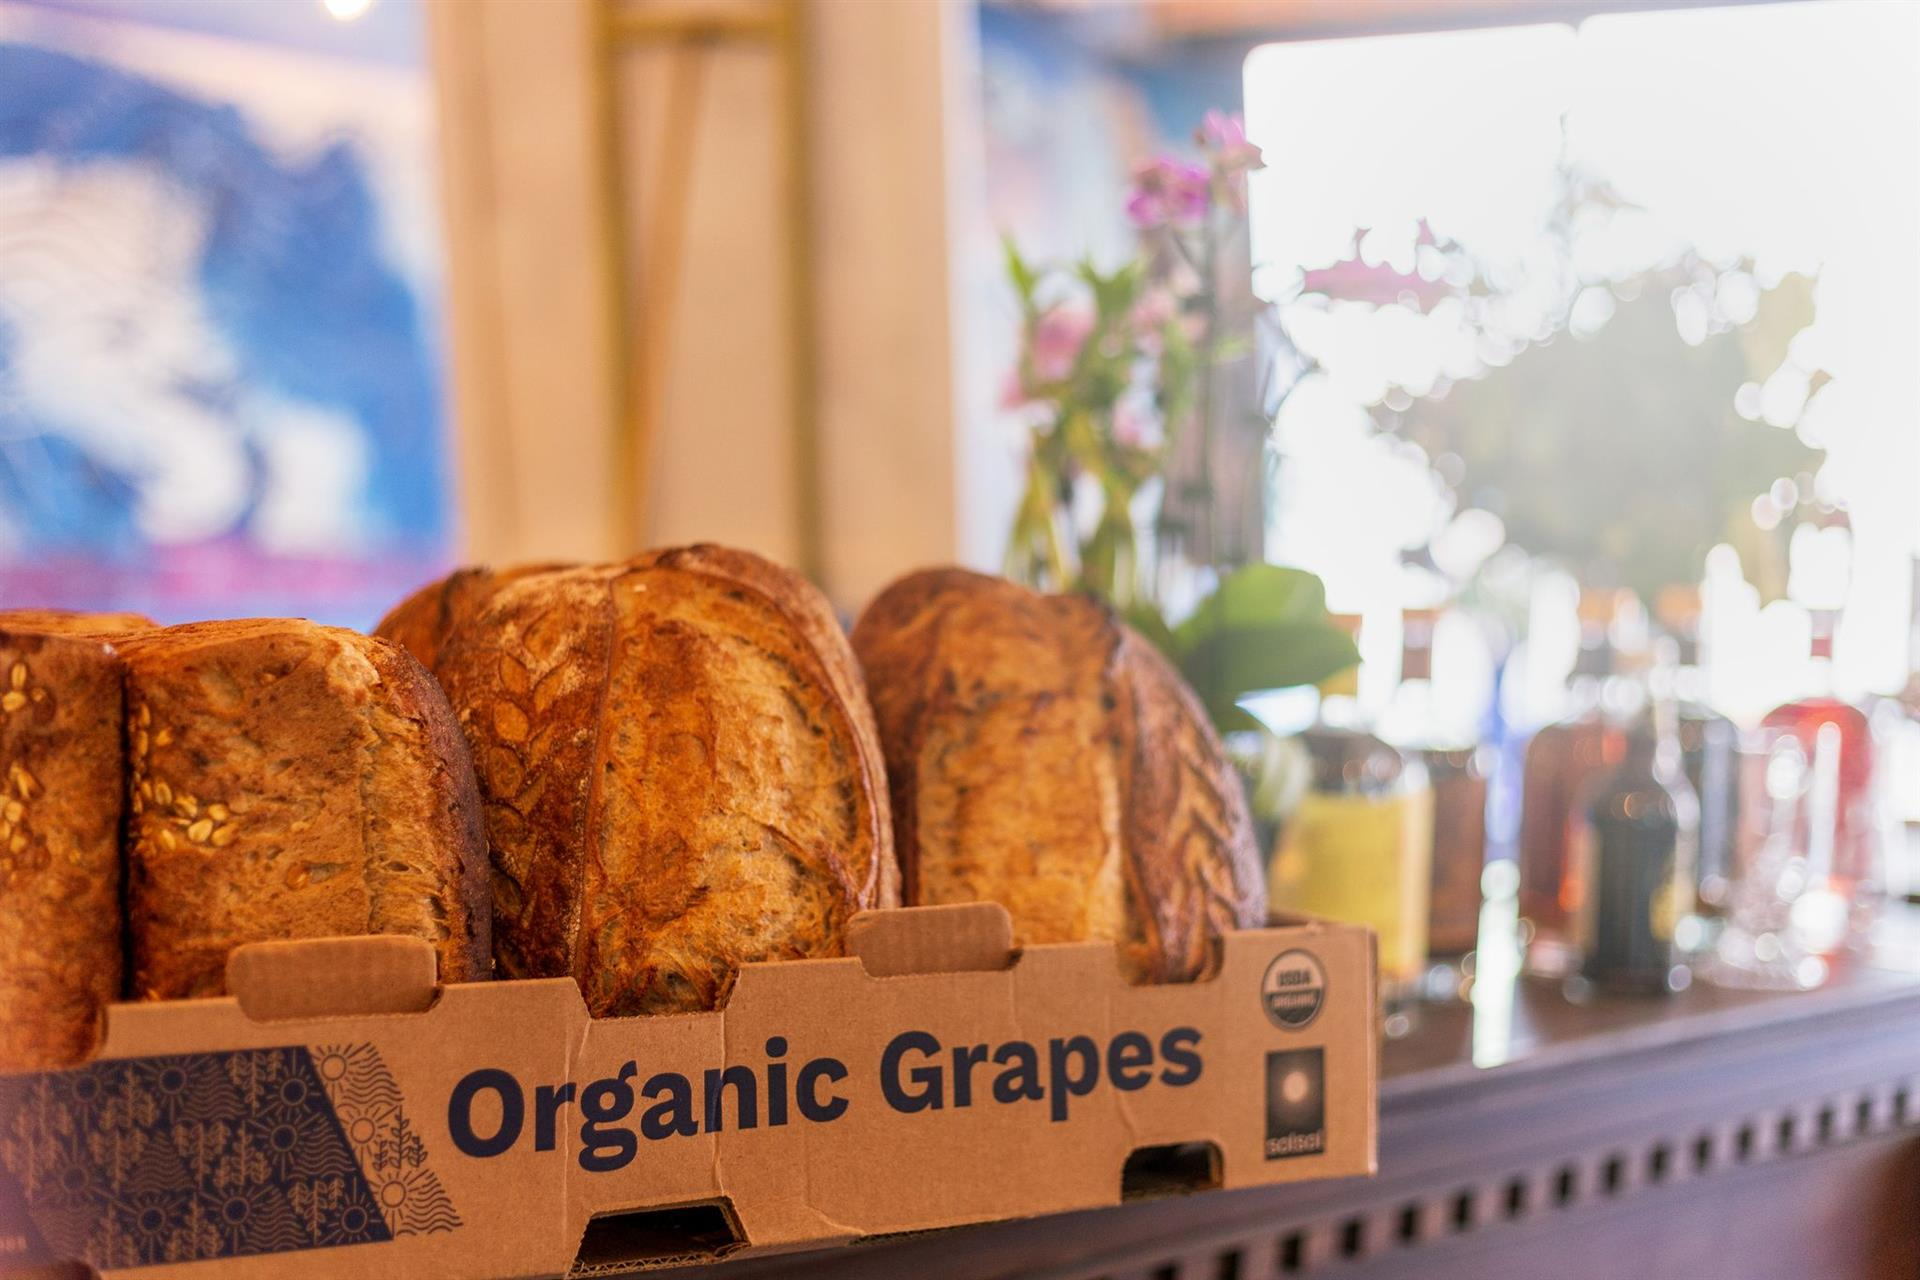 An Organic Grapes cardboard box full of loaved of bread